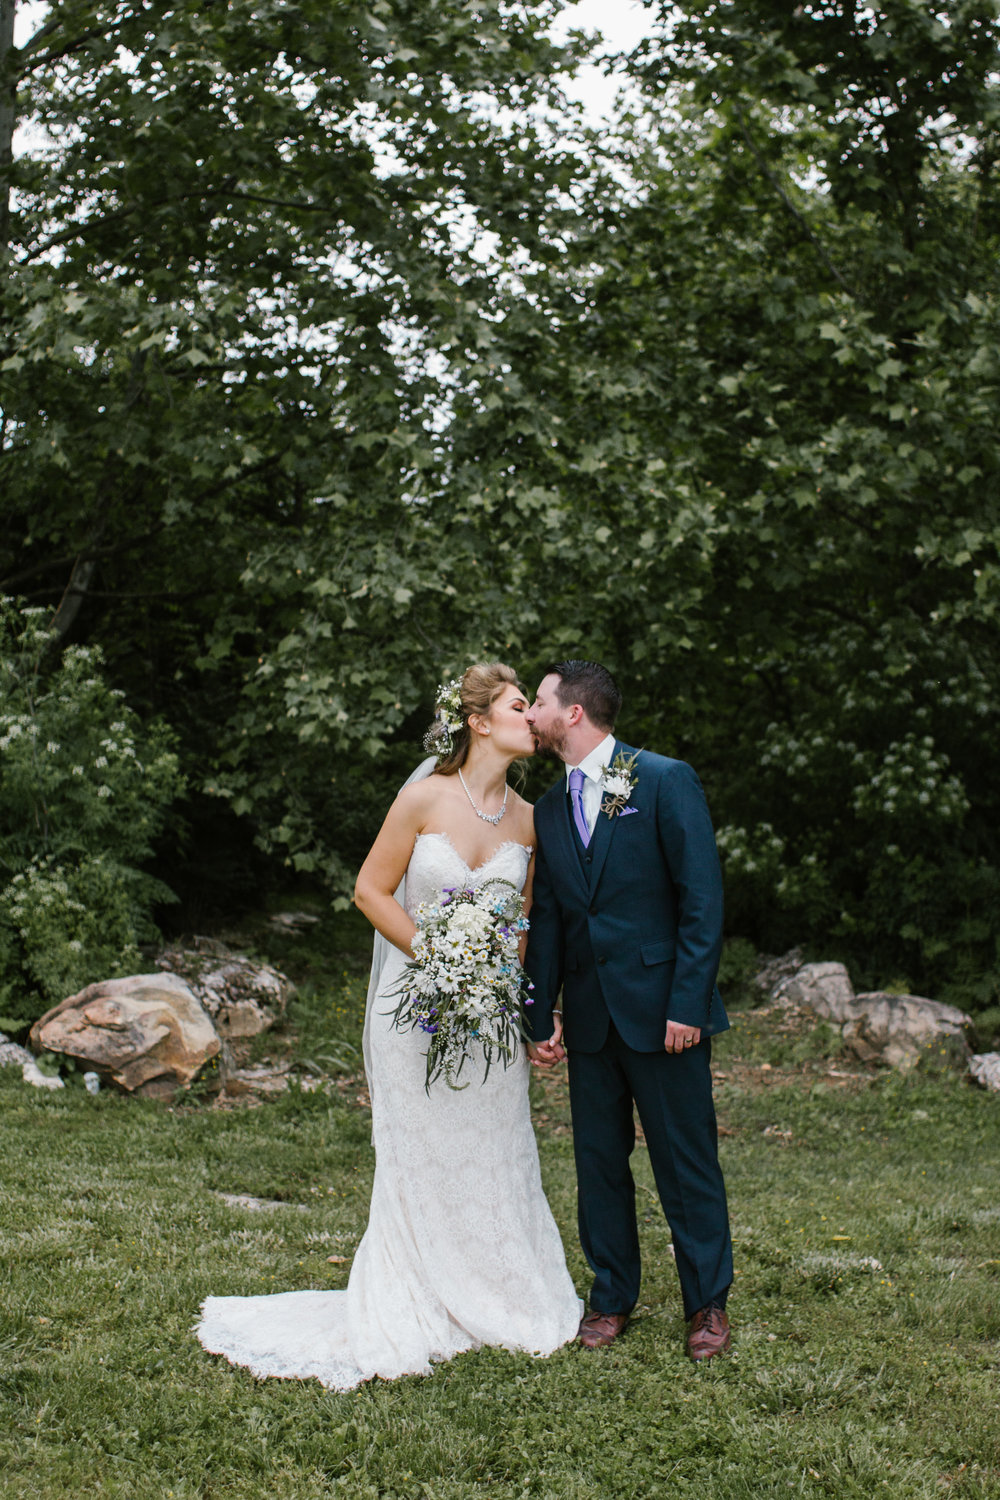 """""""Jason & I wanted to thank you from the bottom of our hearts for the phenomenal job you did on our wedding photos. They are so breathtakingly beautiful & we are so in love with them. You are so blessed to have such wonderful talent & creativity and to have the ability to create something that we will cherish the rest of our lives. We are so happy that we met you and that you were a part of such a special day for us.""""  -Angie & Jason M."""